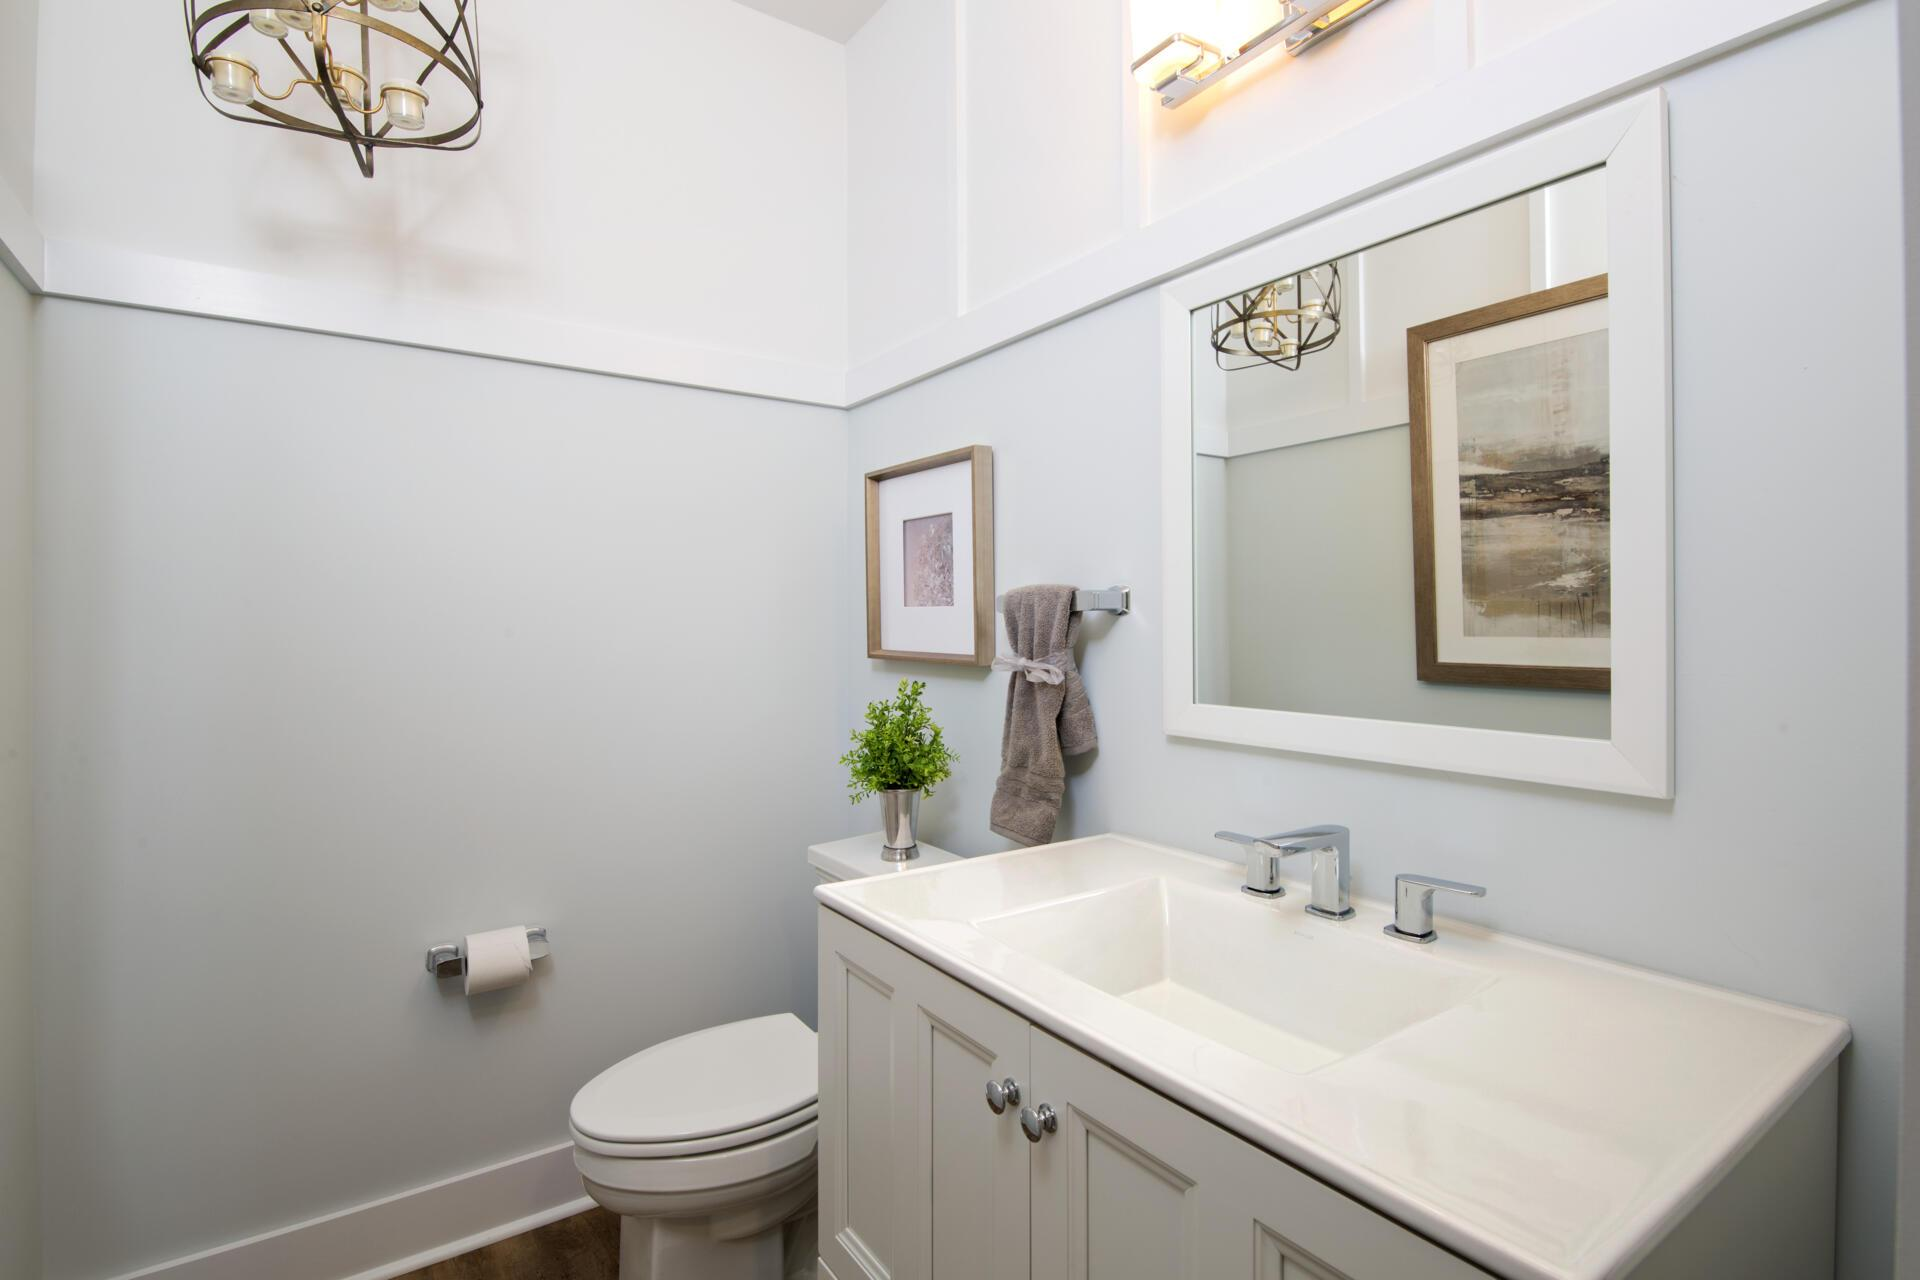 Bathroom featured in the Vanderburgh By Drees Homes in Indianapolis, IN